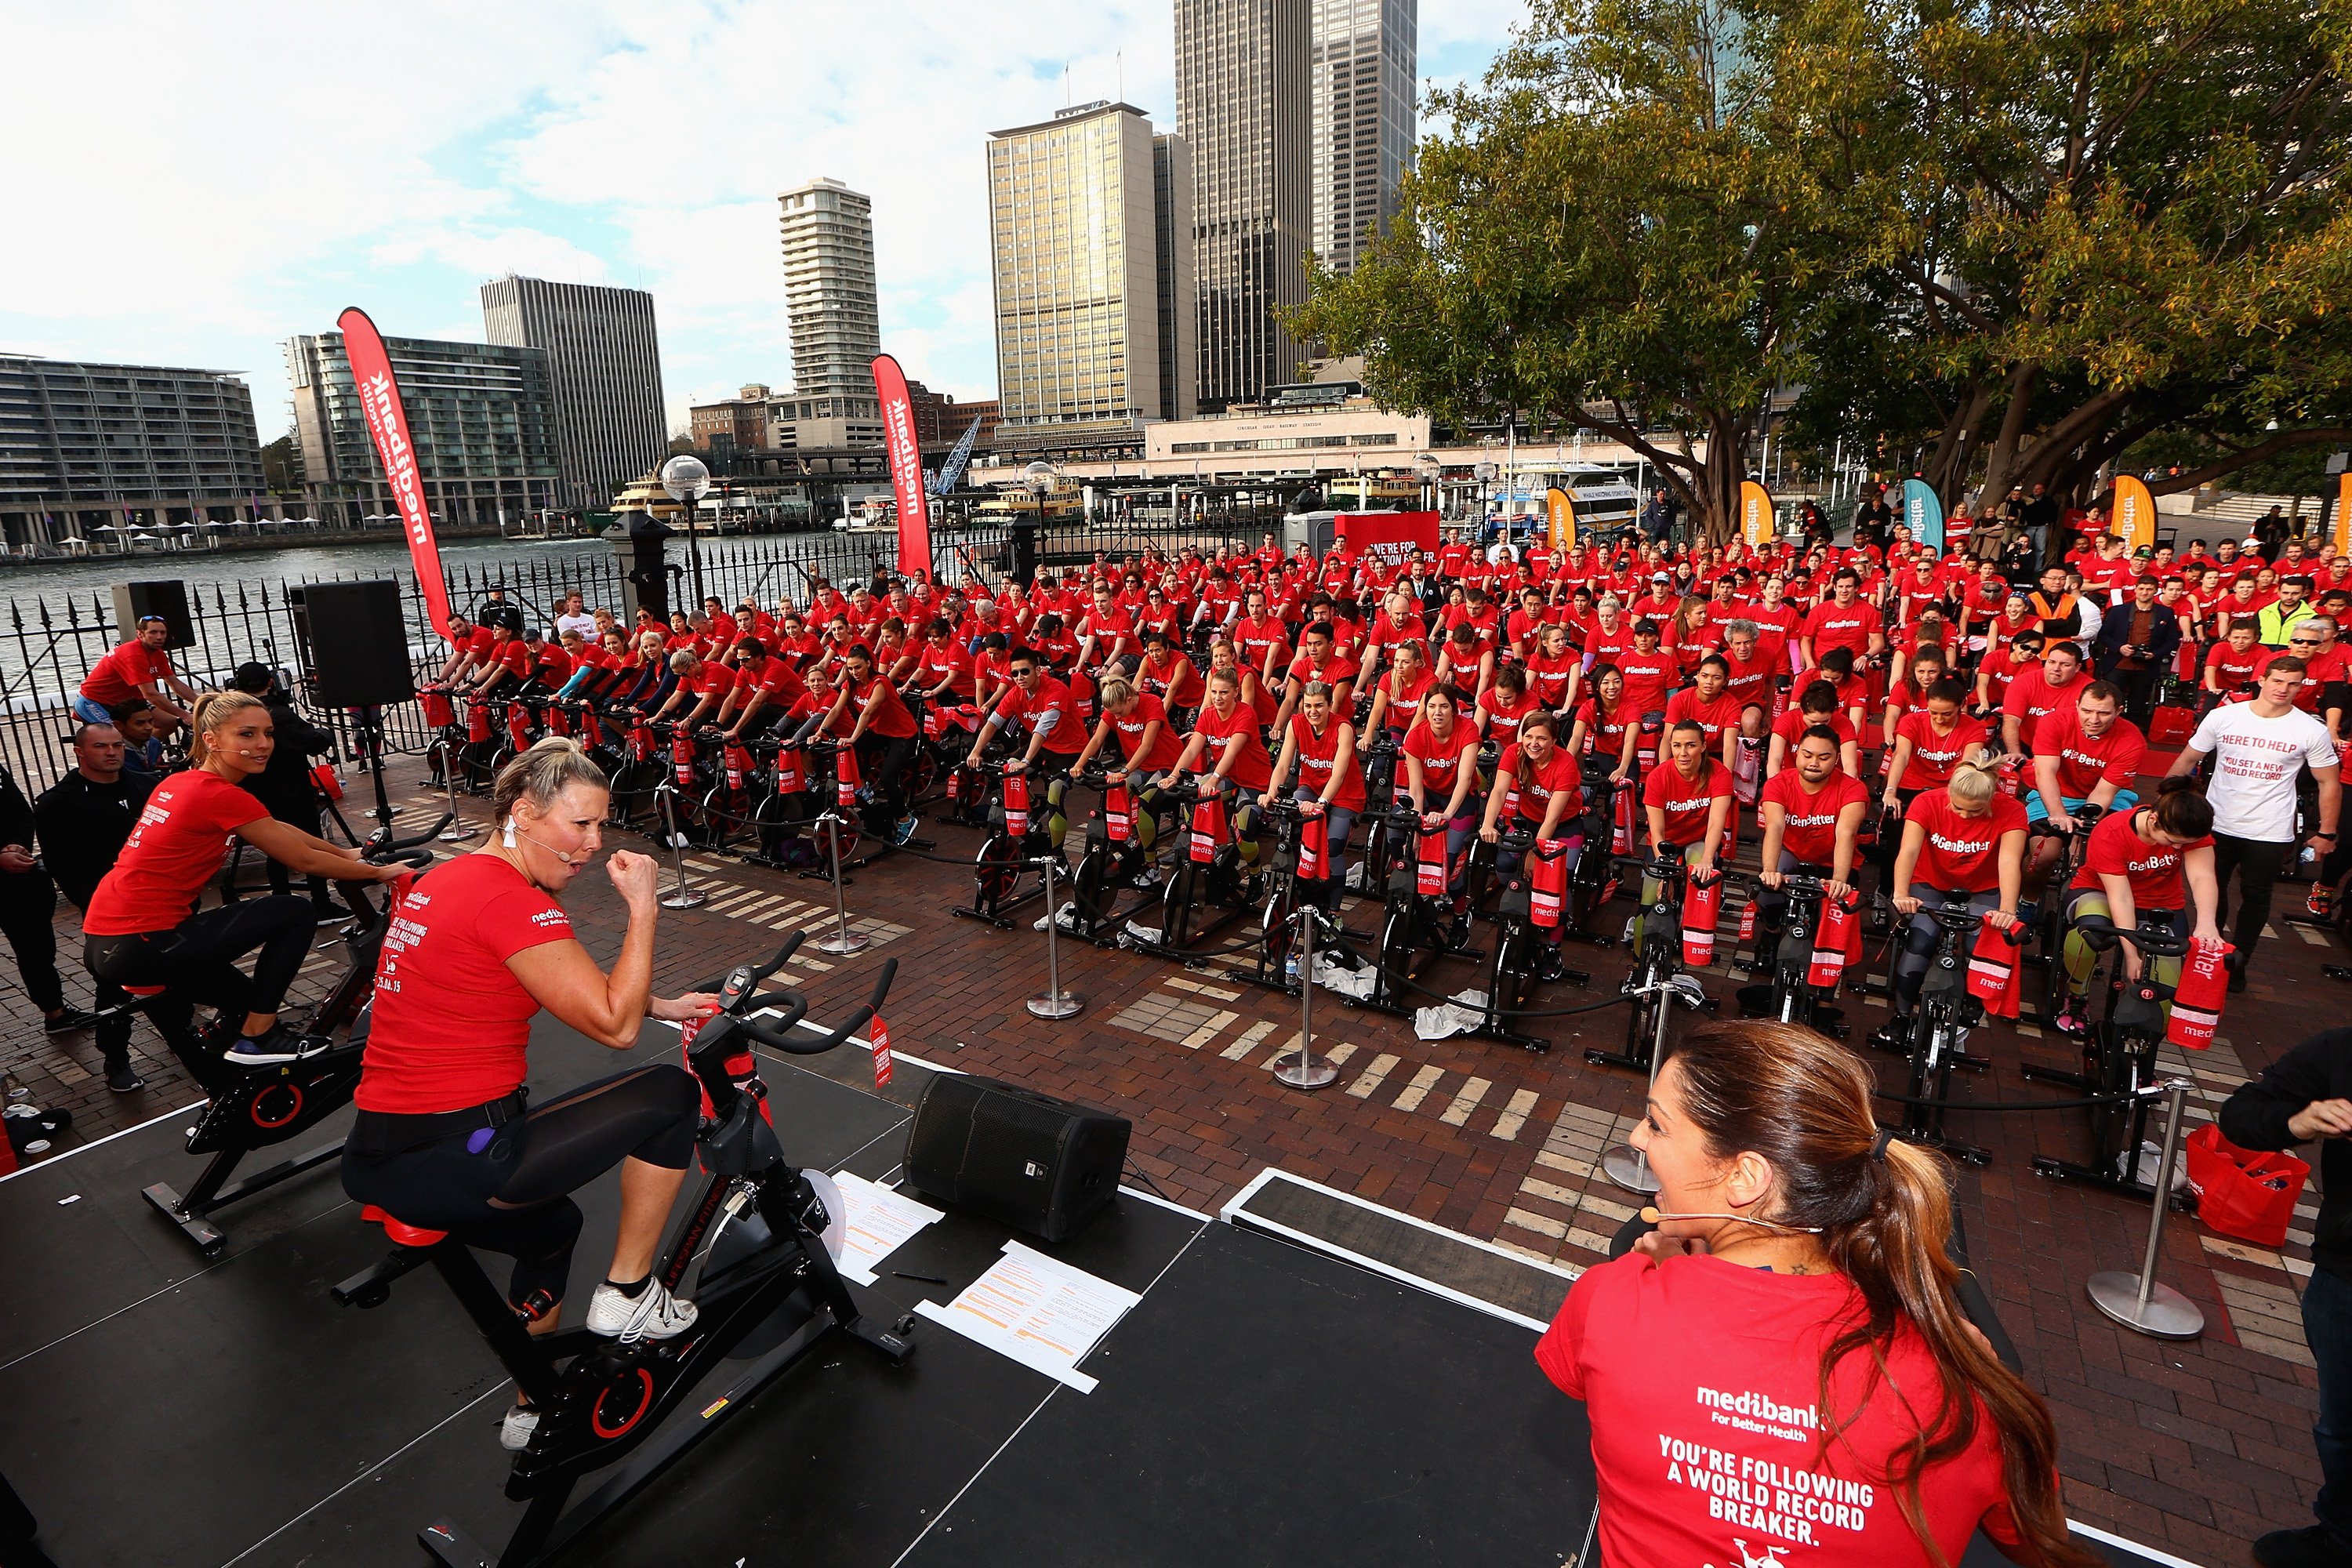 People participate in a Medibank spin class on June 25, 2015 in Sydney, Australia. Medibank, Base Body Babes and Cadel Evans have set a new Guinness World Record for the Largest Spin Class. (Cameron Spencer/Getty Images for Medibank)